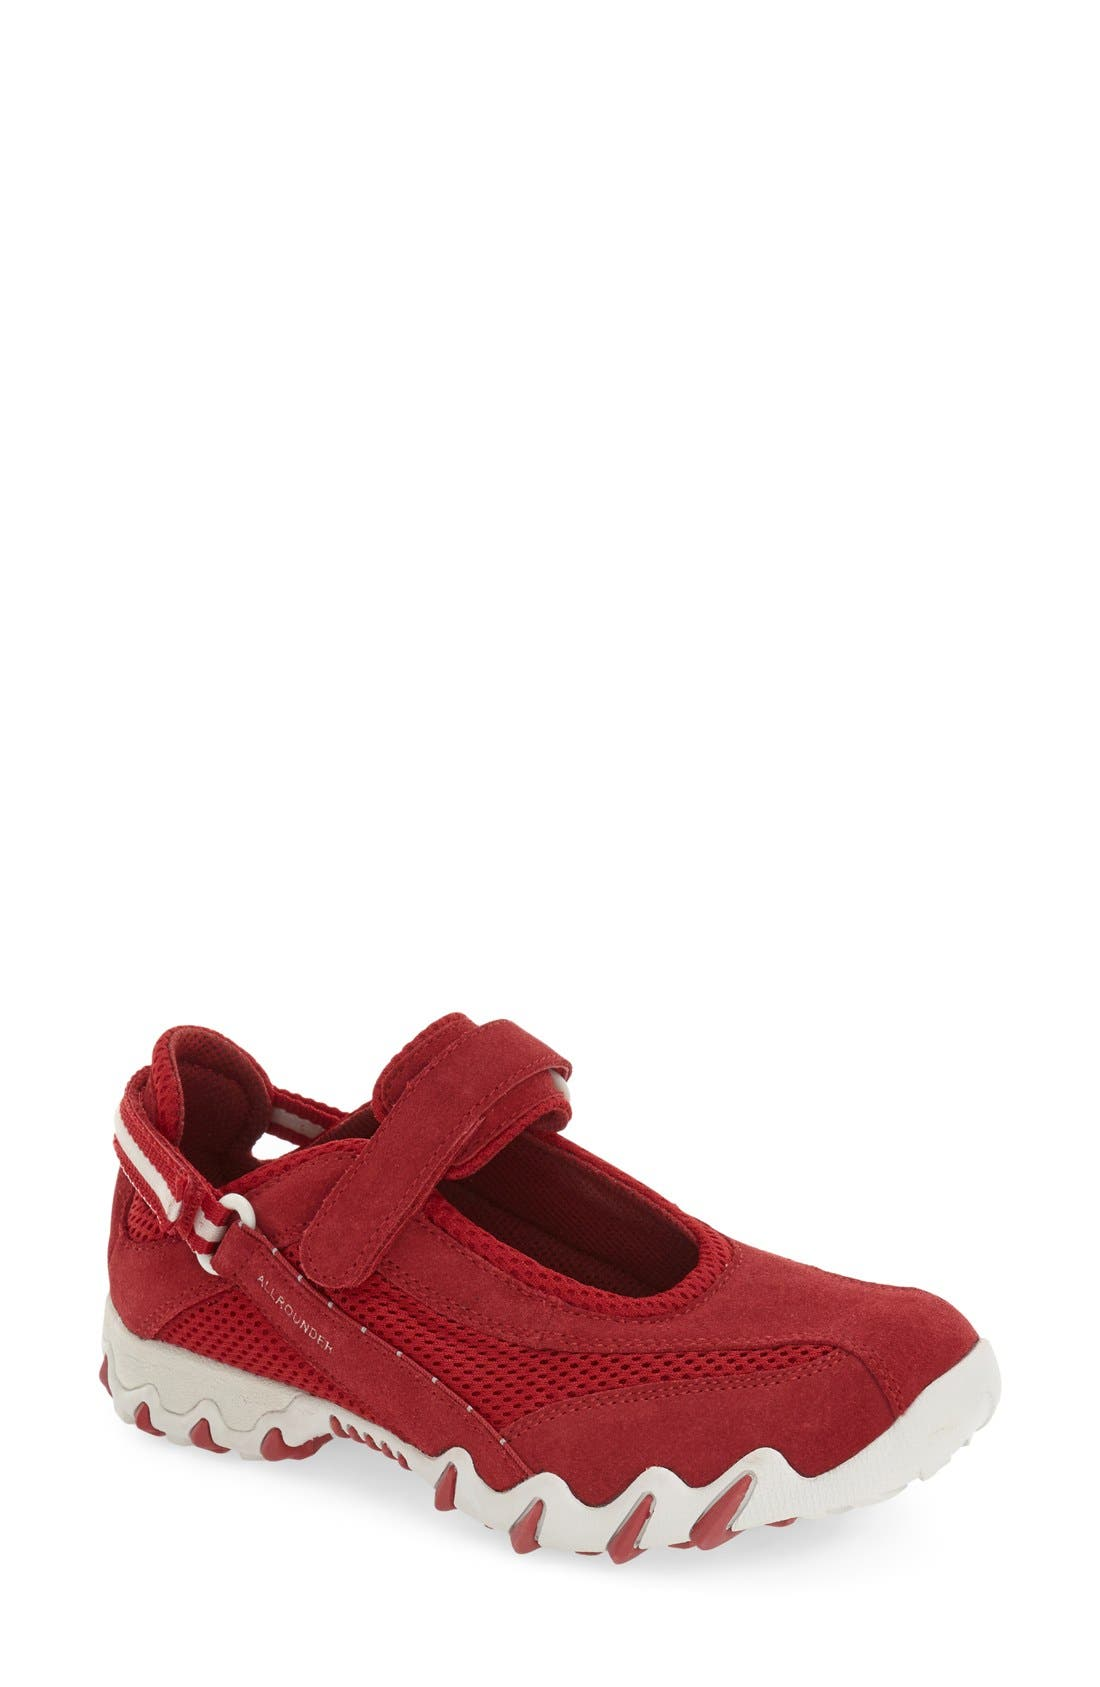 Alternate Image 1 Selected - Allrounder by Mephisto 'Niro' Athletic Shoe (Women)